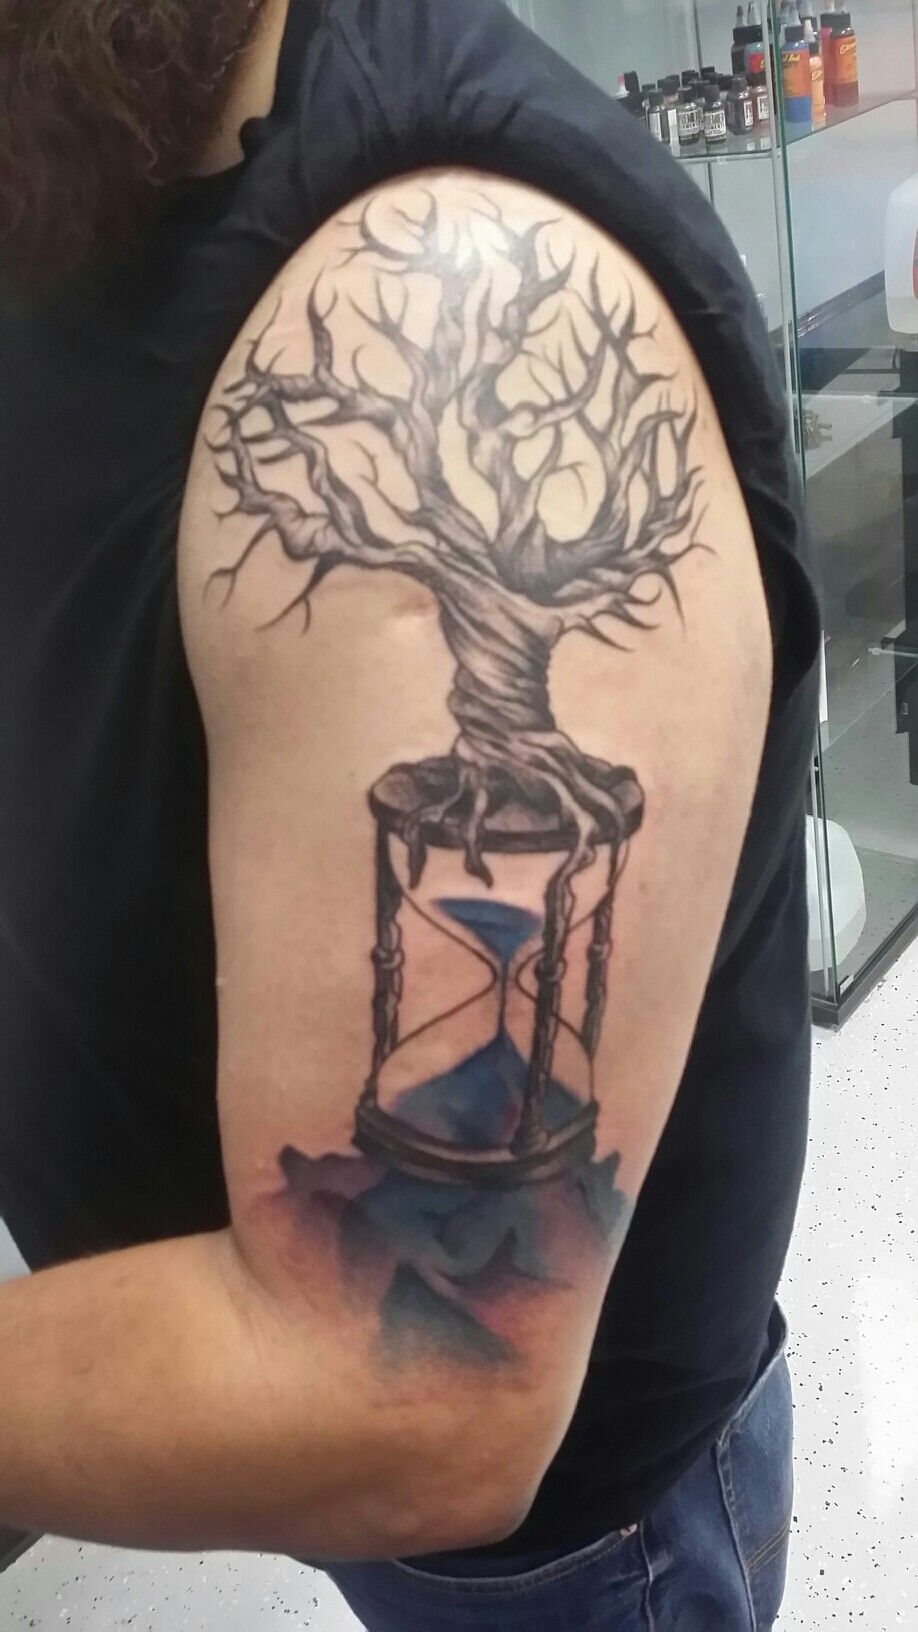 Hourglass and tree tattoo I got from Rose and Dagger